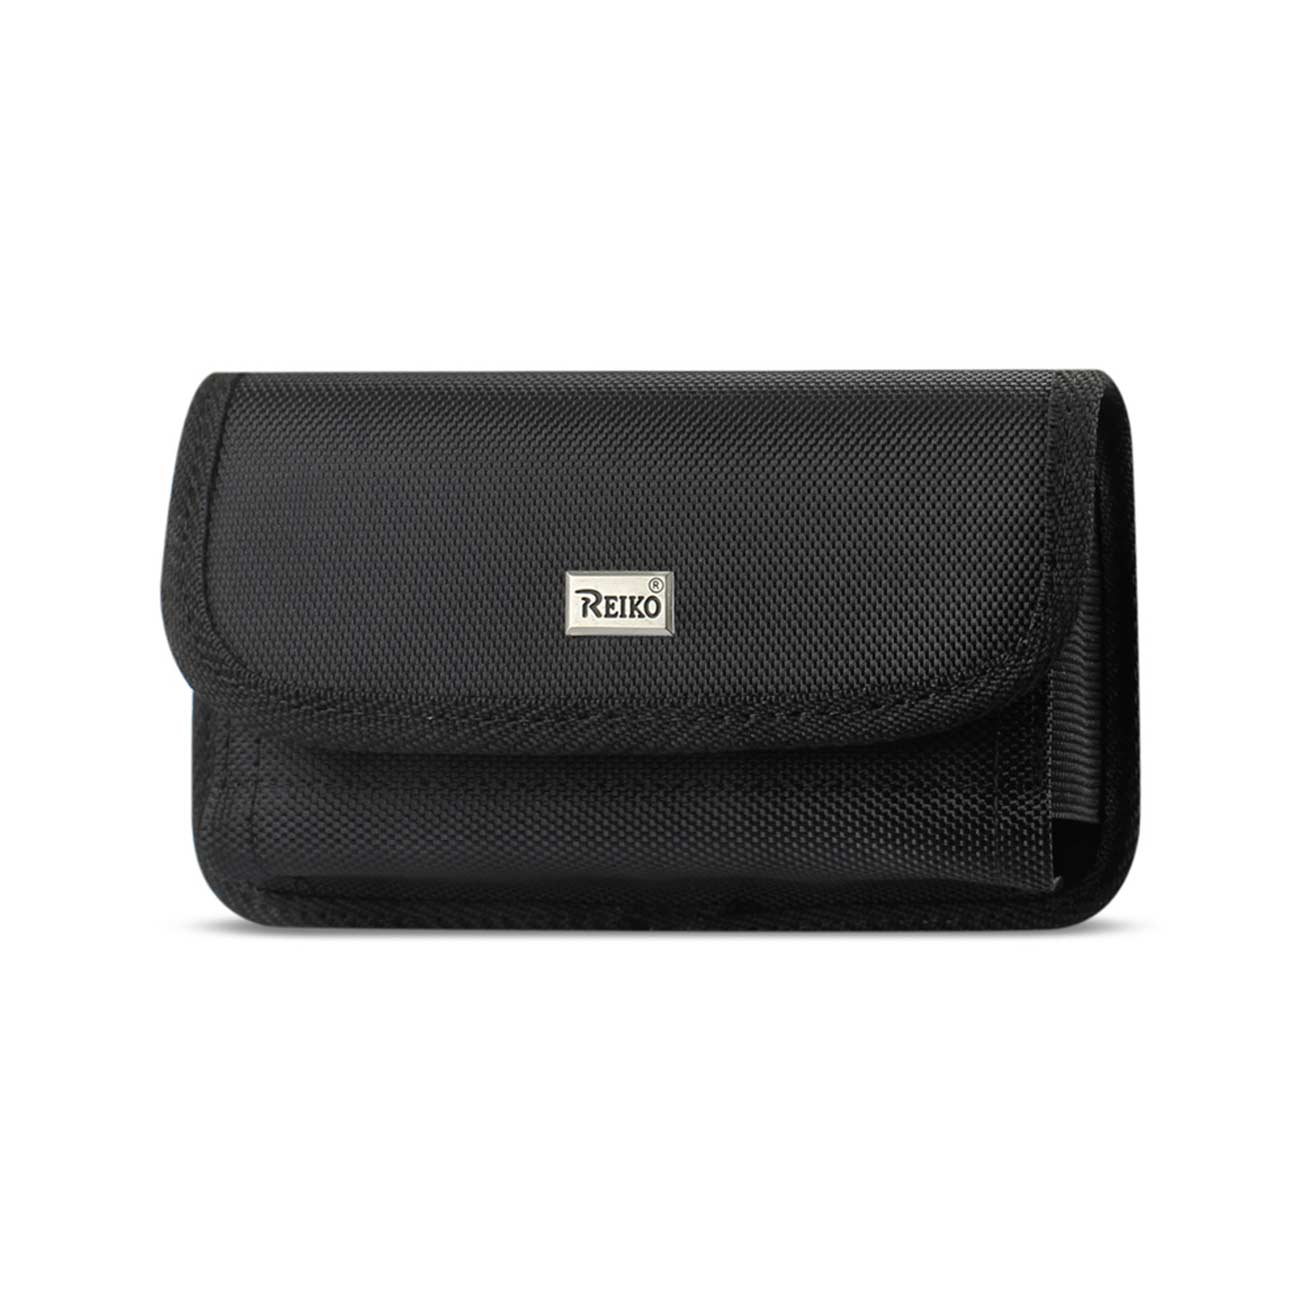 Horizontal Rugged Pouch With Velcro In Black (7.0X3.9X0.7 Inches)